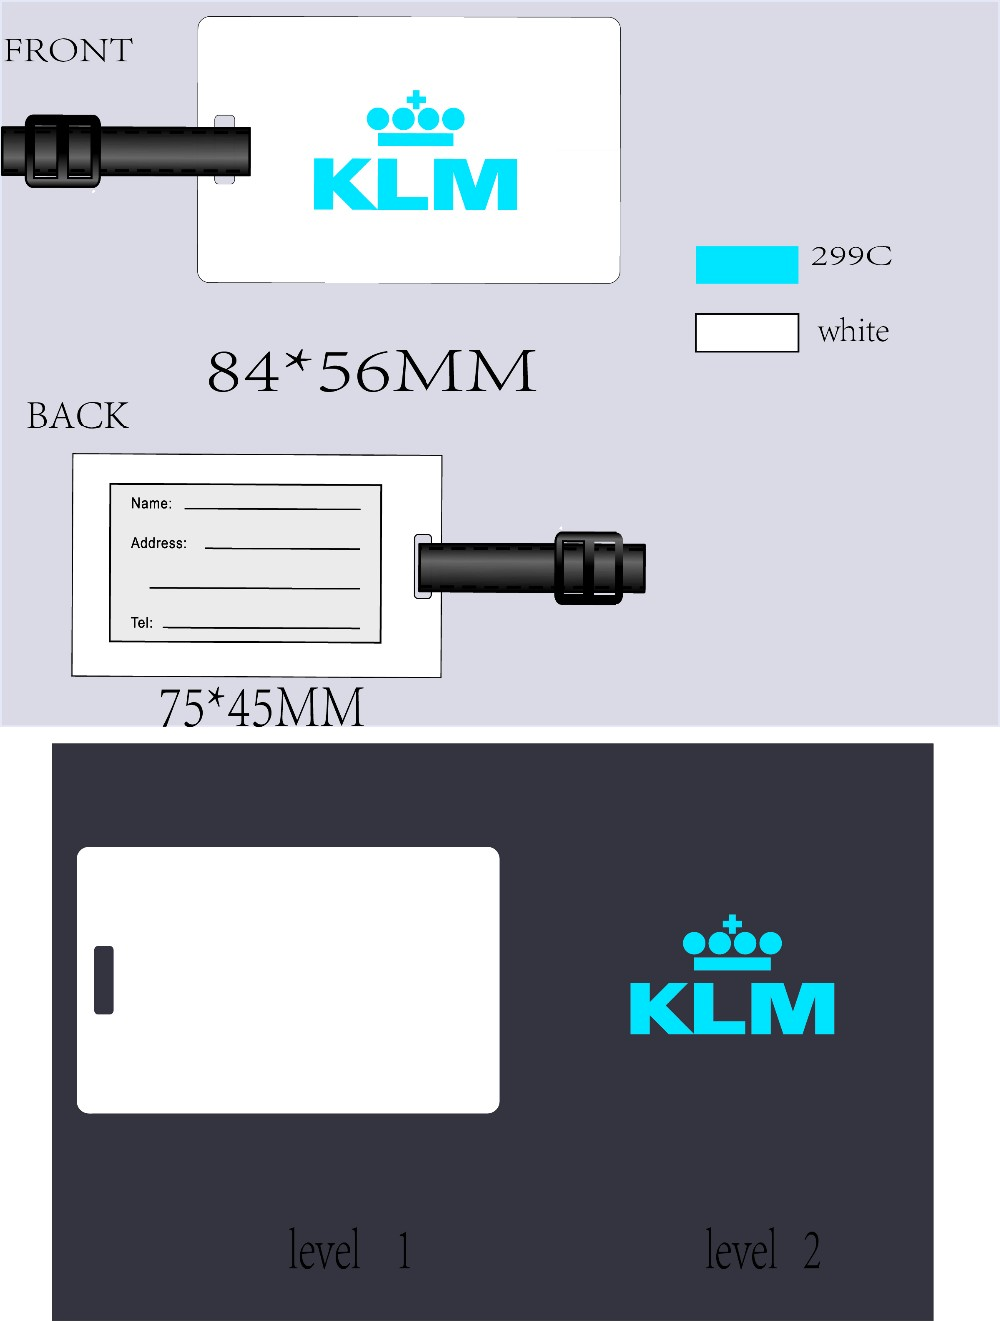 baggage tag for airlines